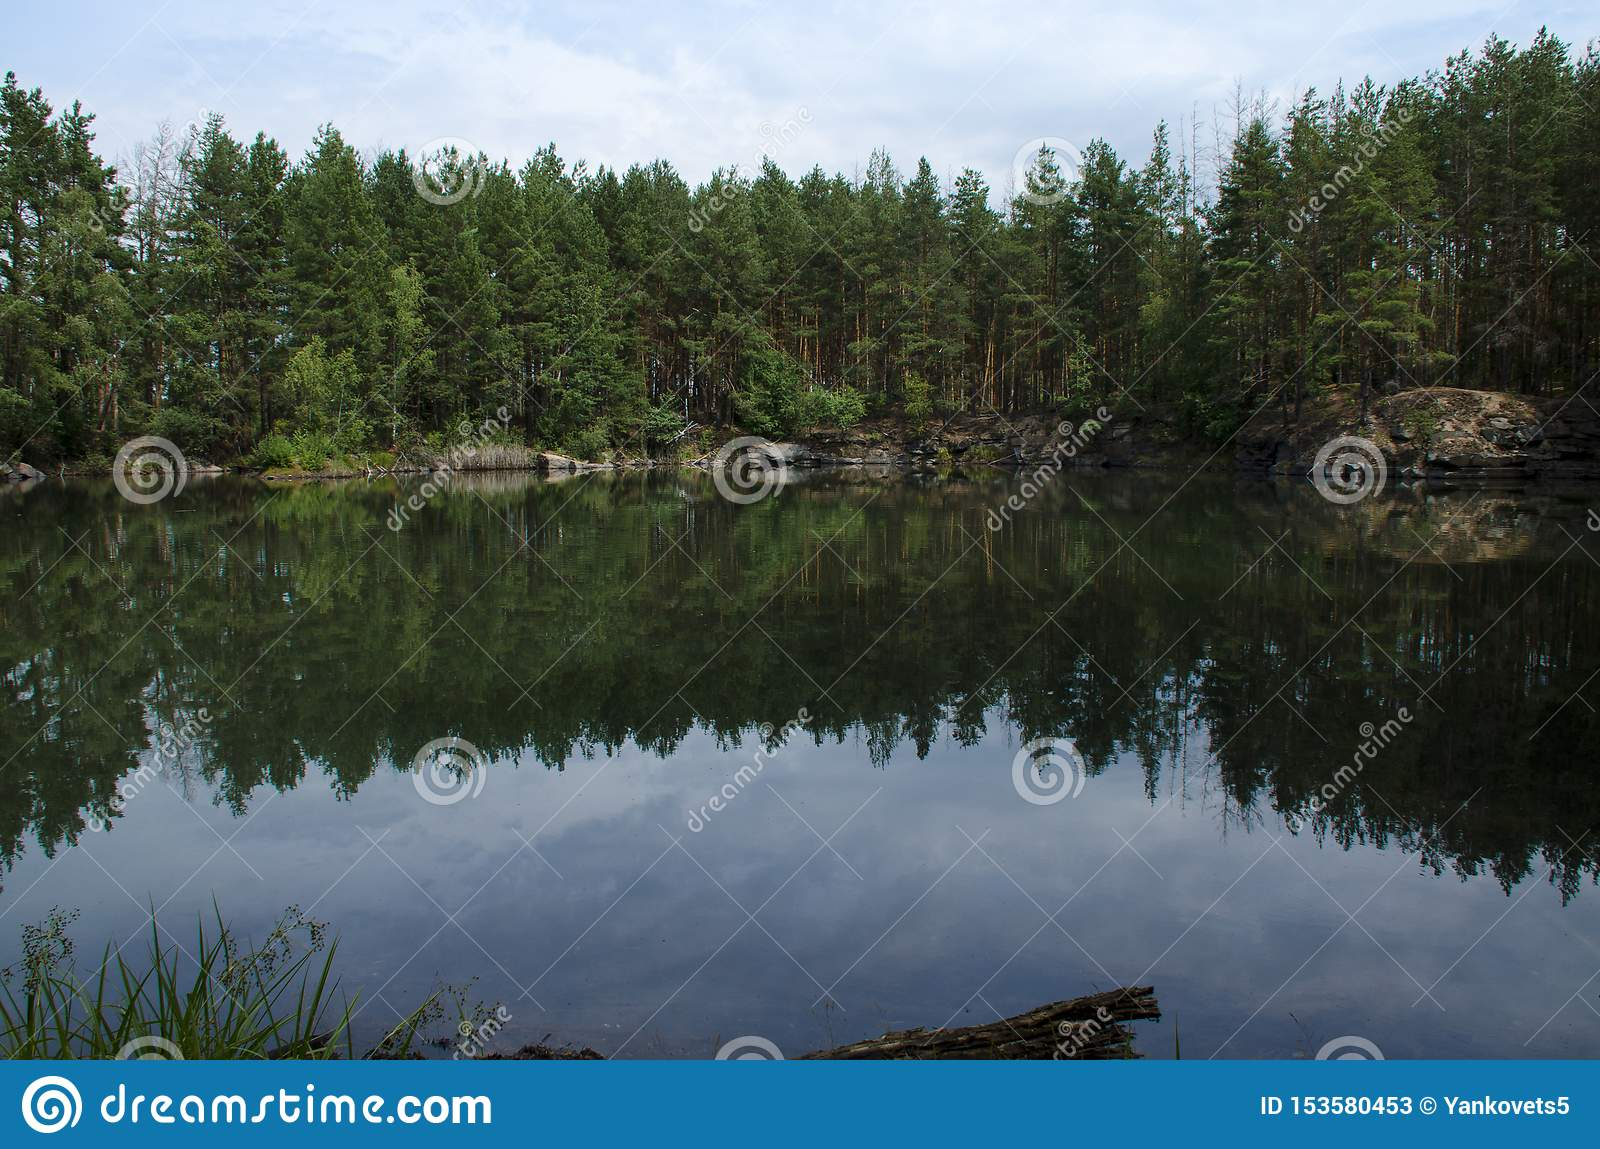 Coniferous forest is reflected in a lake with granite shores